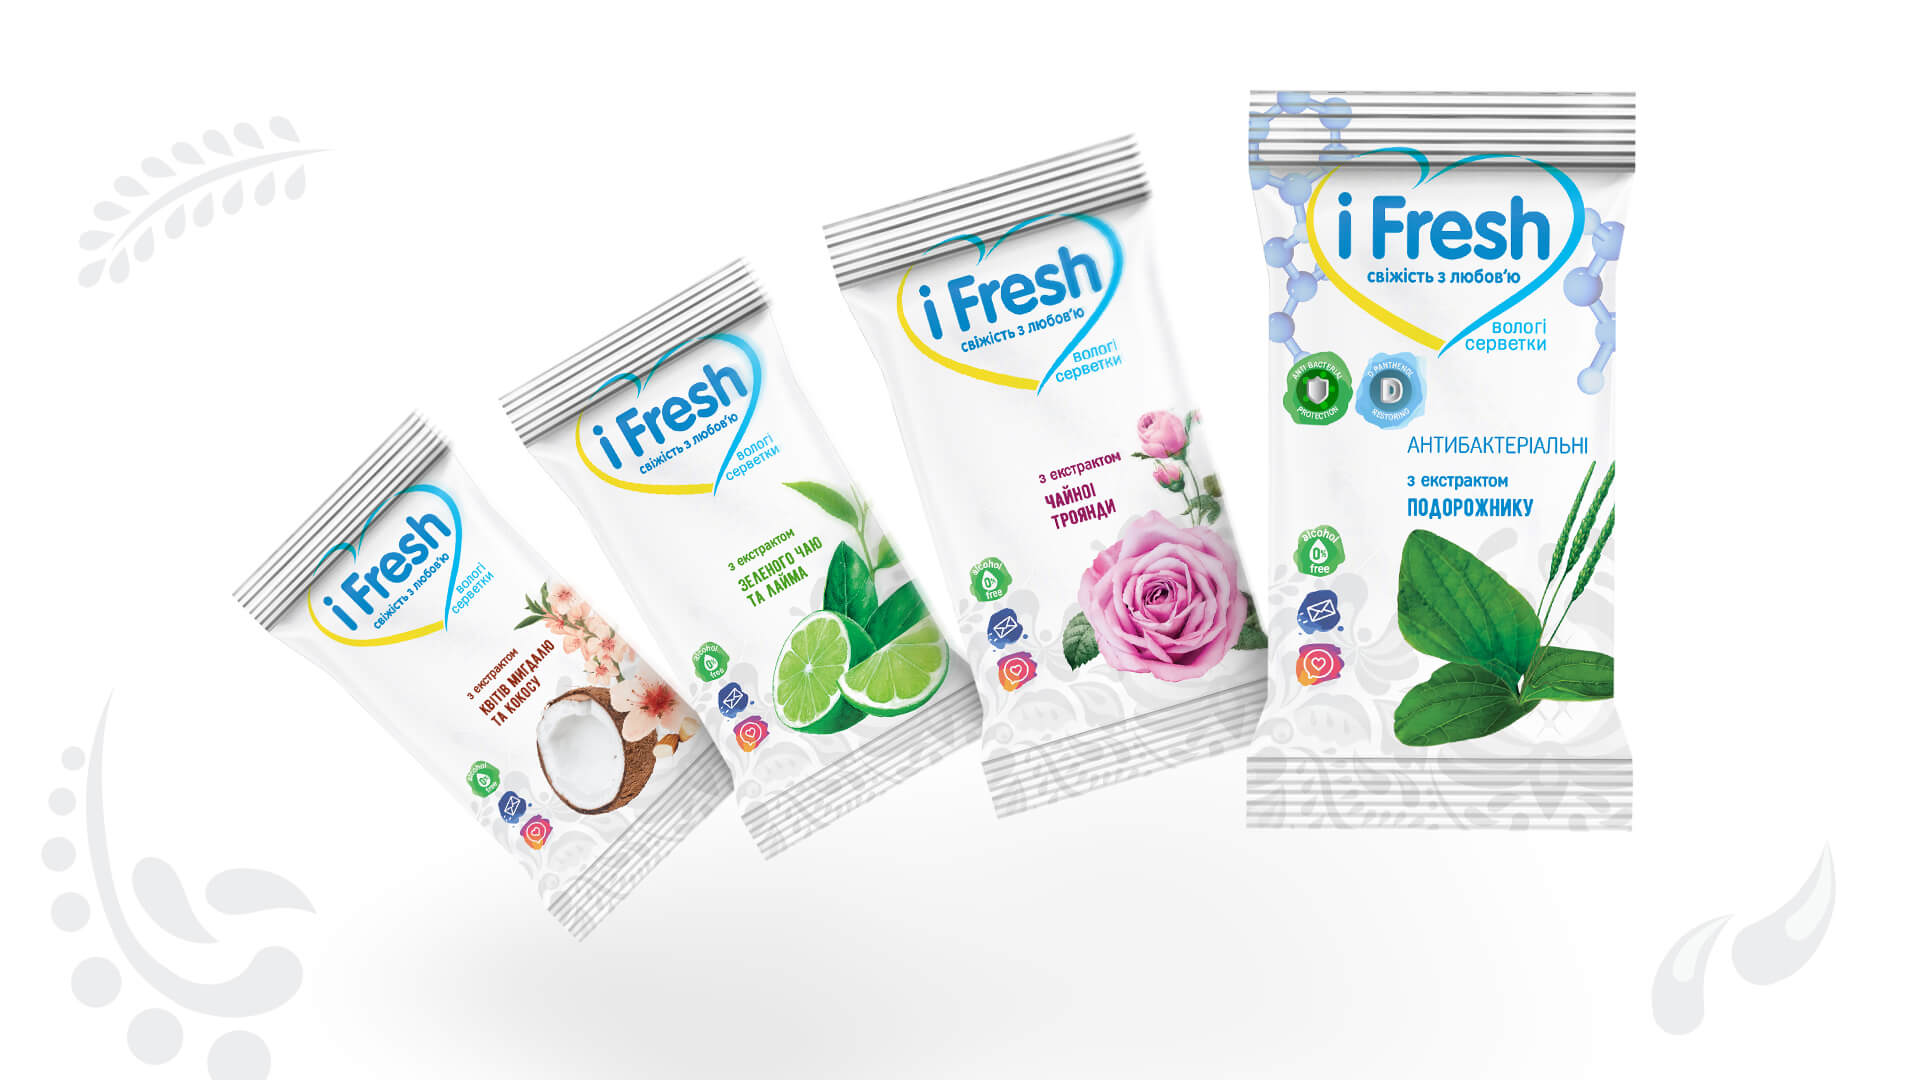 Logo and packaging design for iFresh